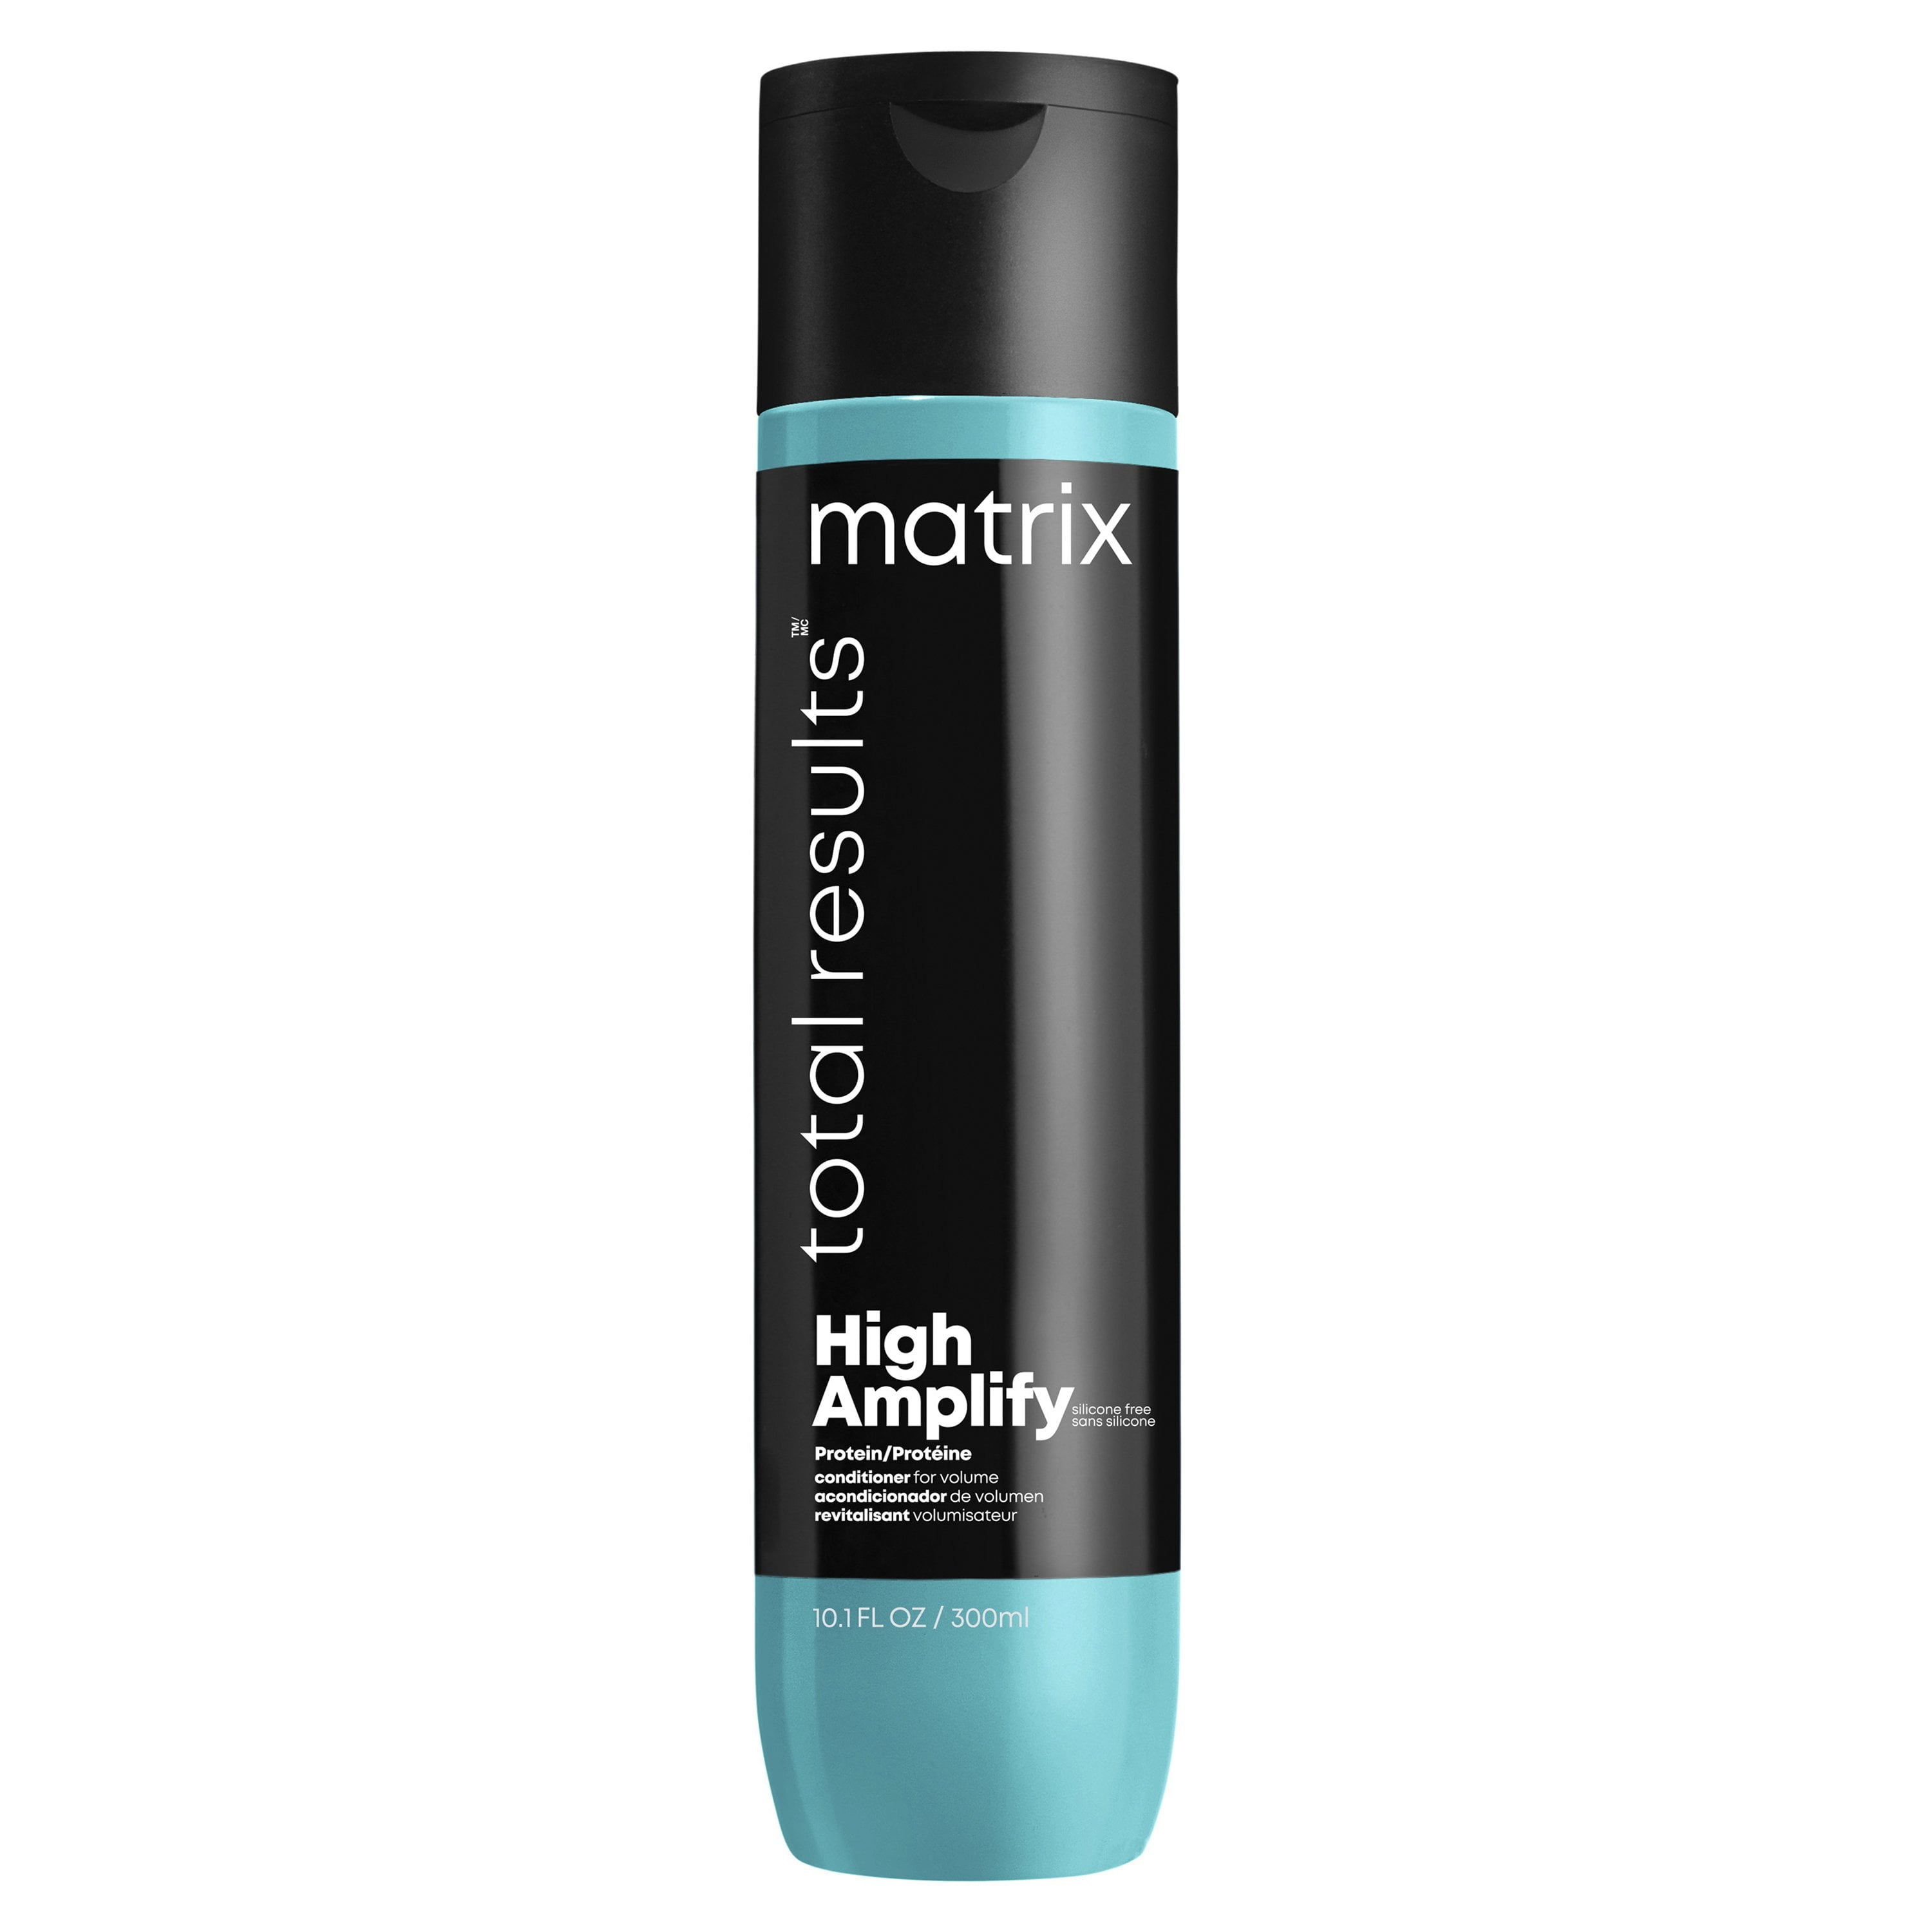 Matrix Total Results High Amplify Conditioner 300ml product shot